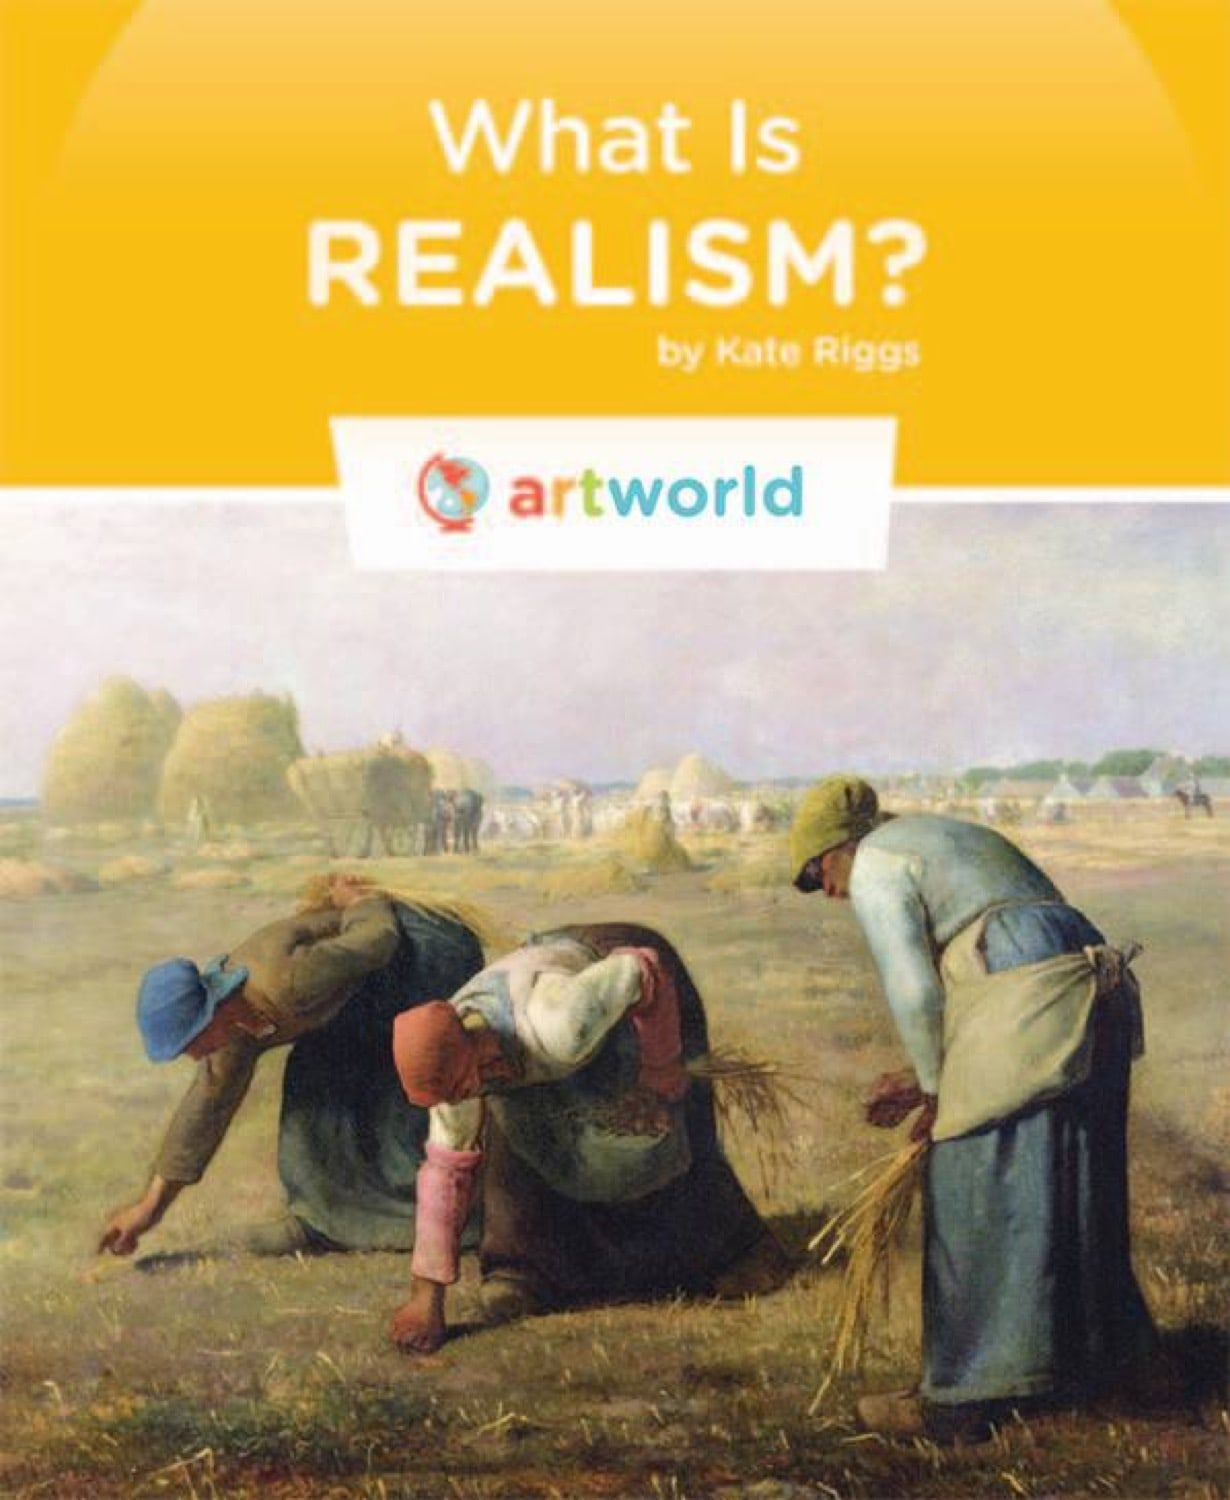 Art World: What Is Realism?